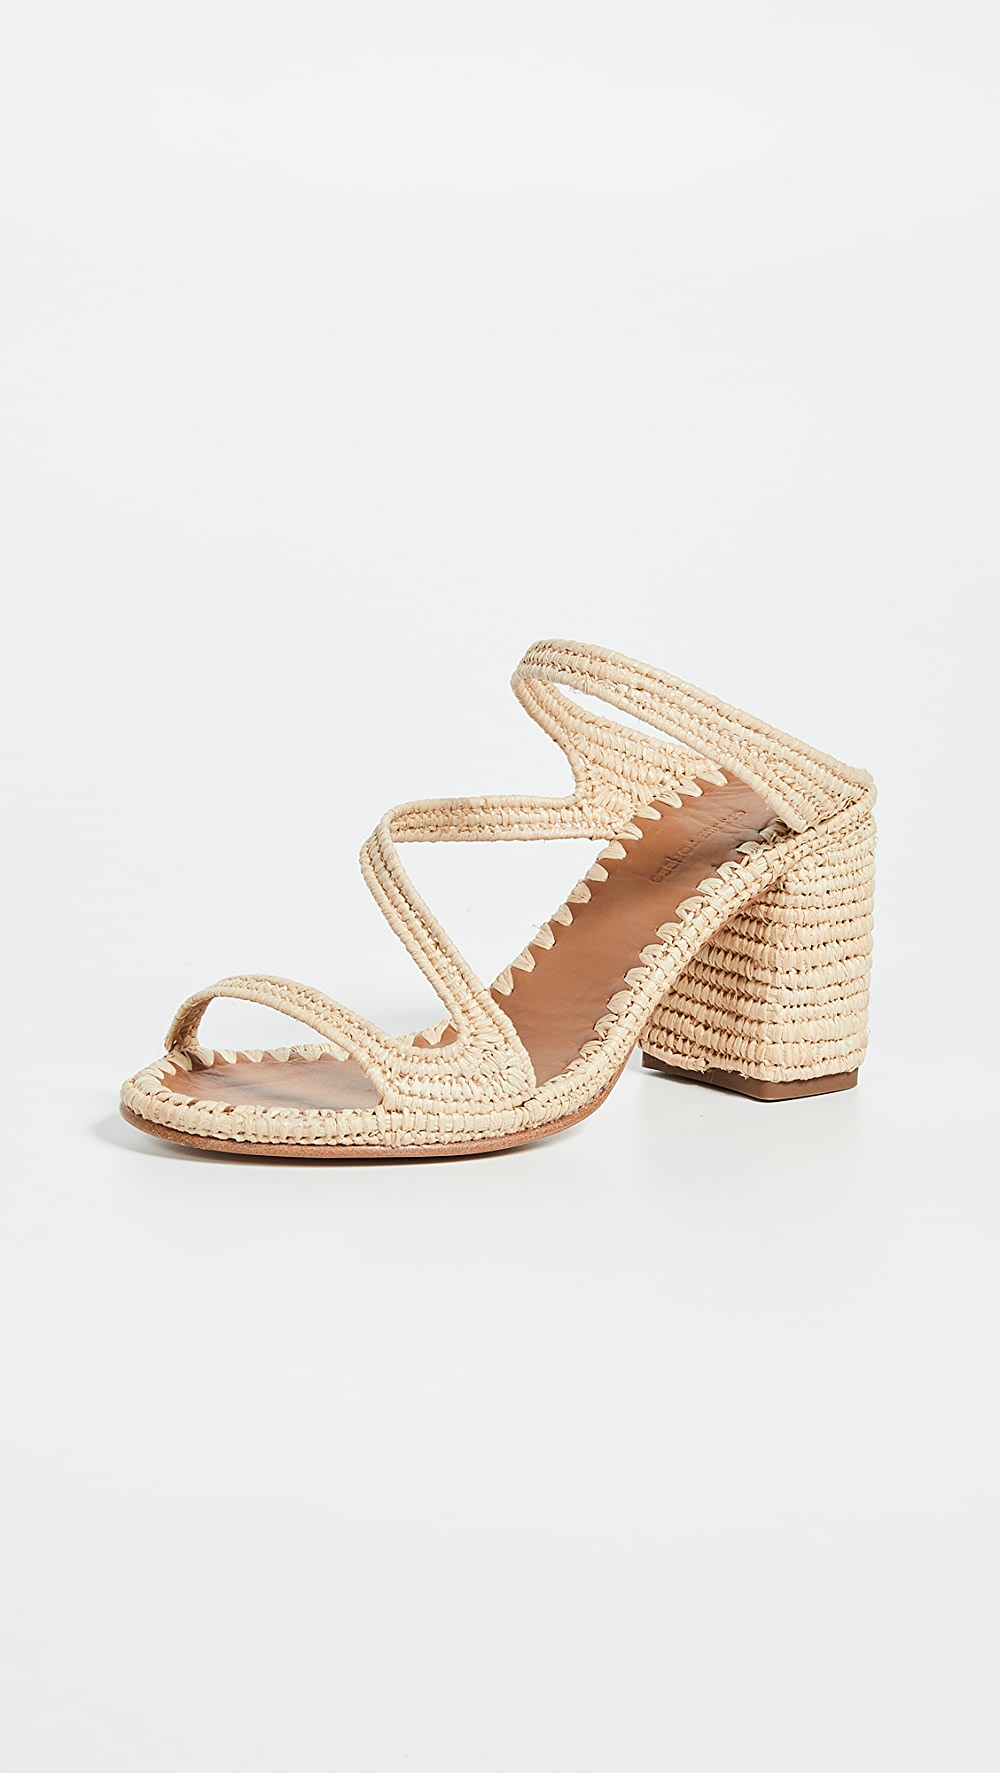 Competent Carrie Forbes - Salah Heeled Mules Yet Not Vulgar